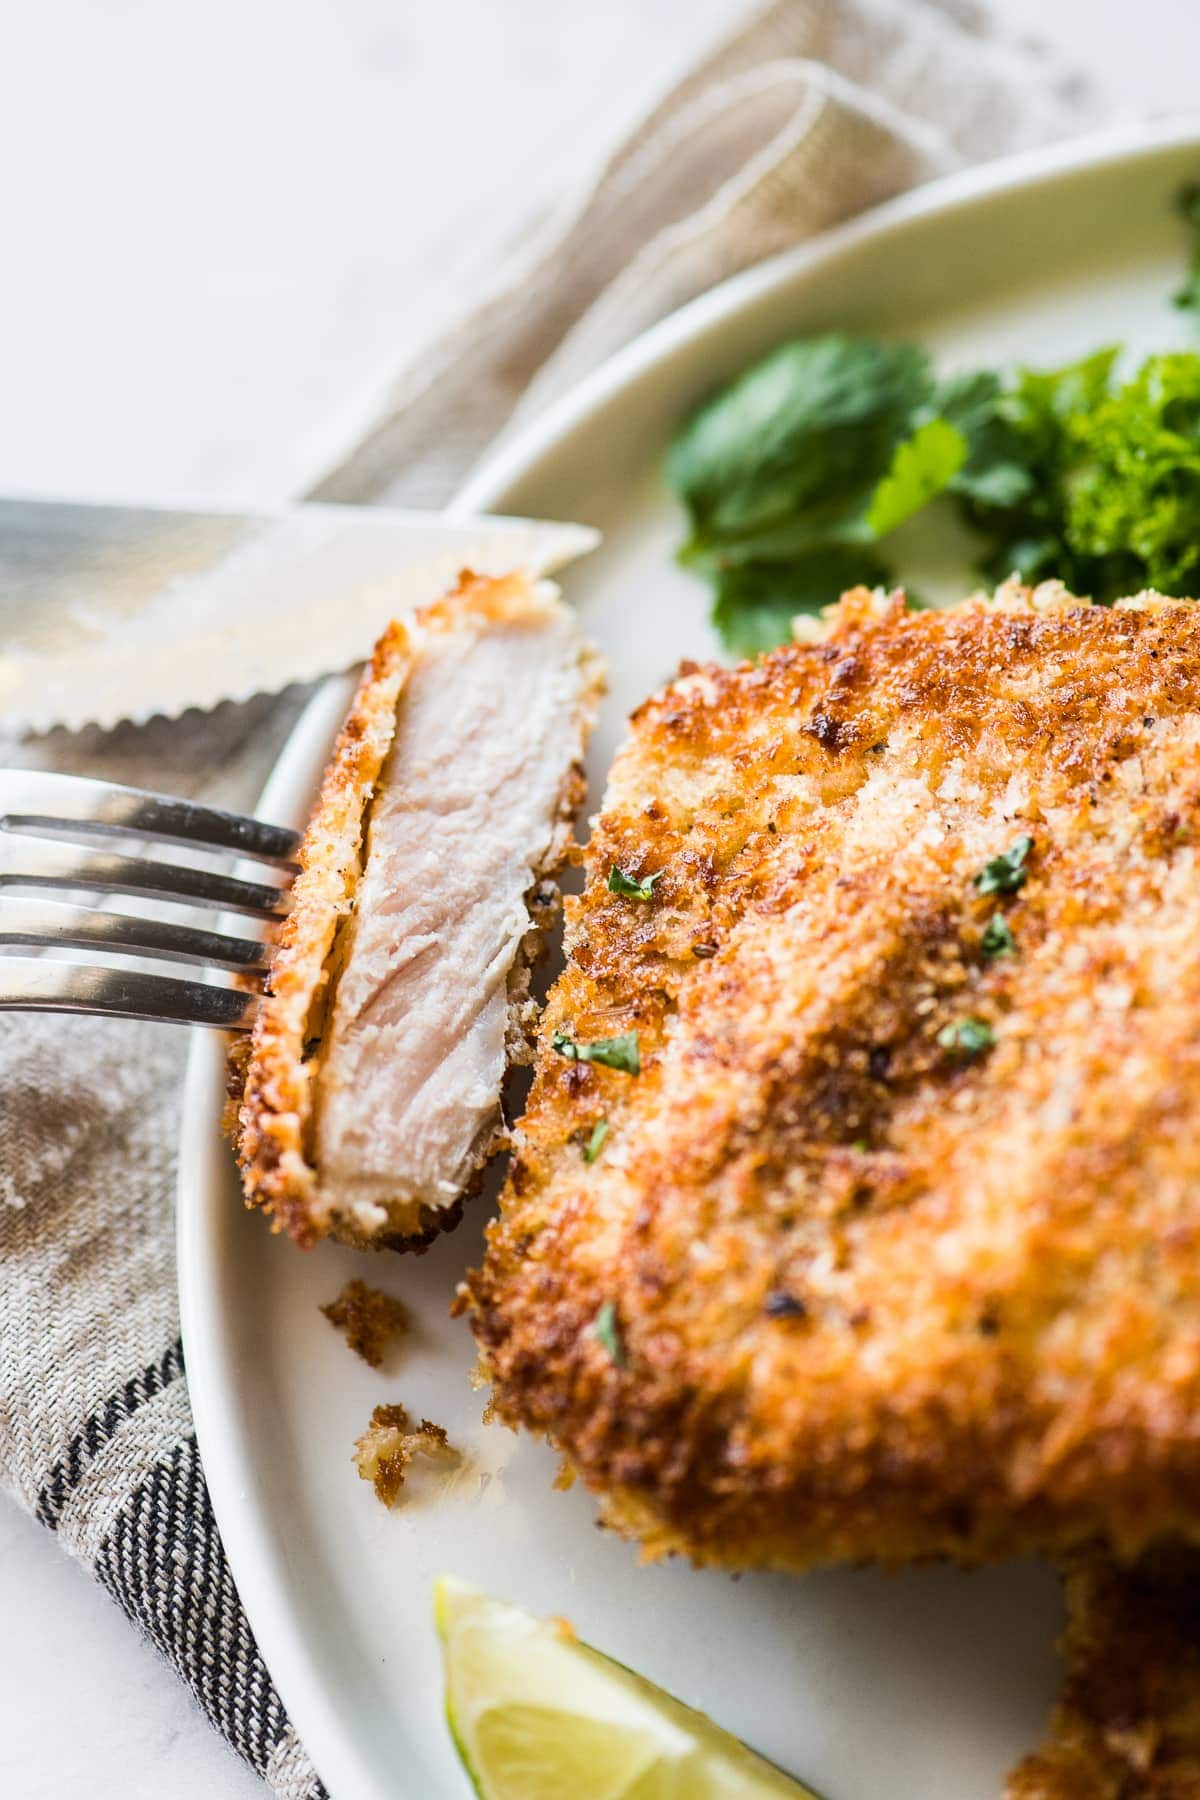 A slice of crispy breaded pork cutlet on a fork ready to eat.